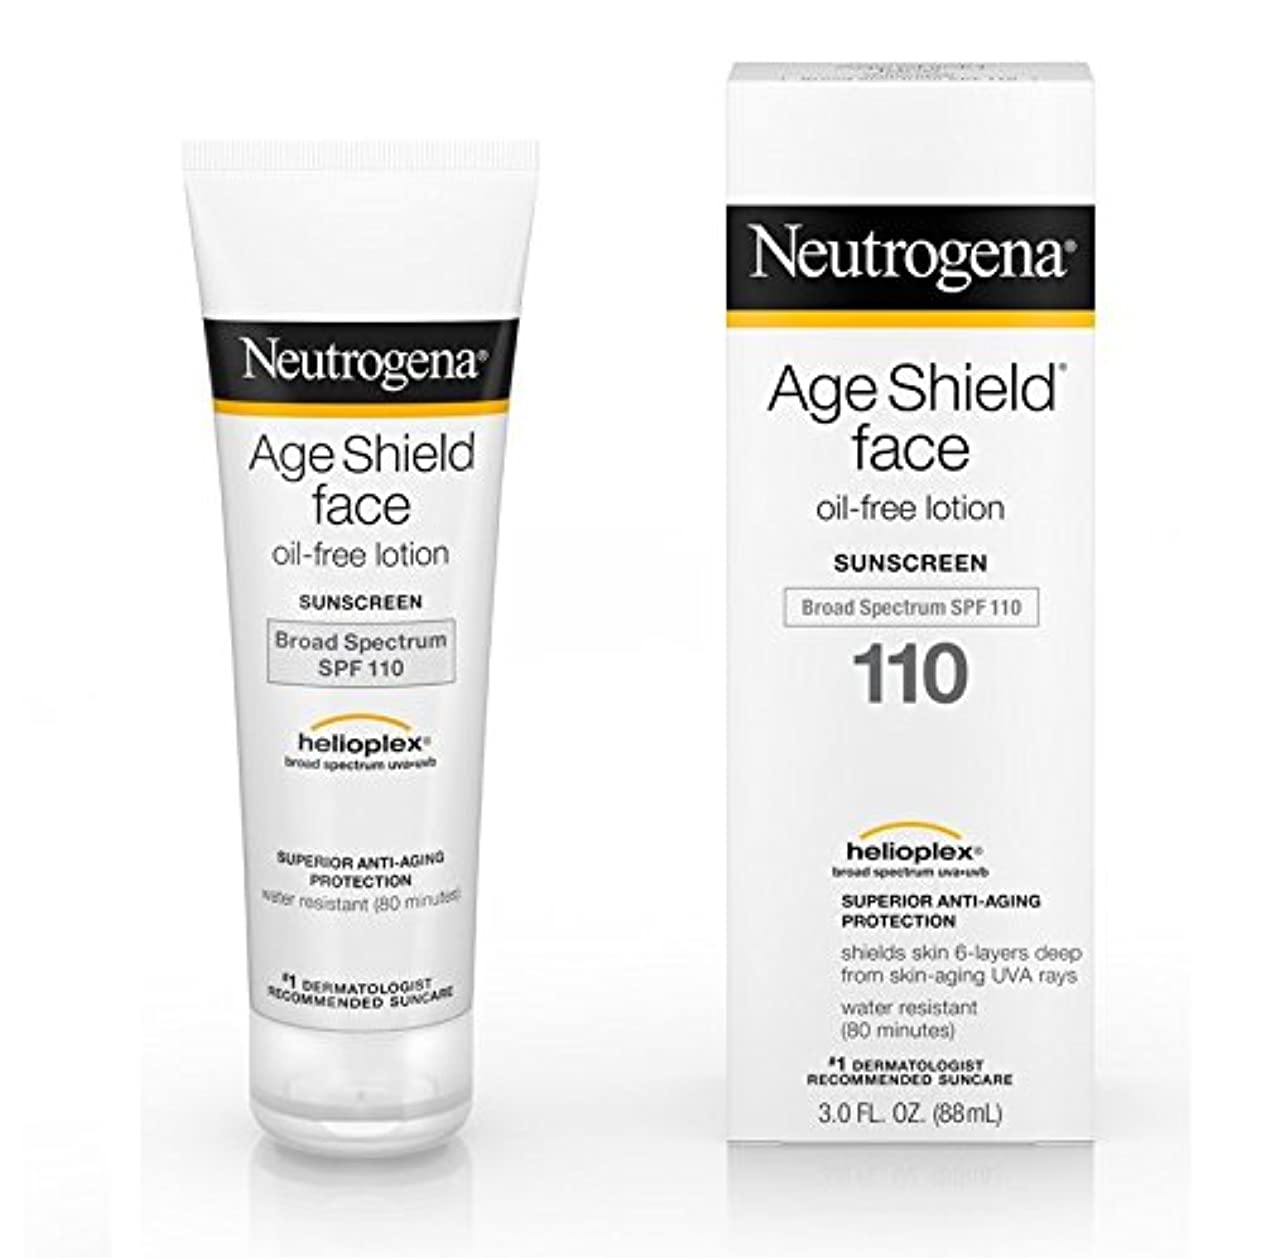 送るネーピア販売計画【海外直送品】Neutrogena Age Shield® Face Oil-Free Lotion Sunscreen Broad Spectrum SPF 110 - 3 FL OZ(88ml)